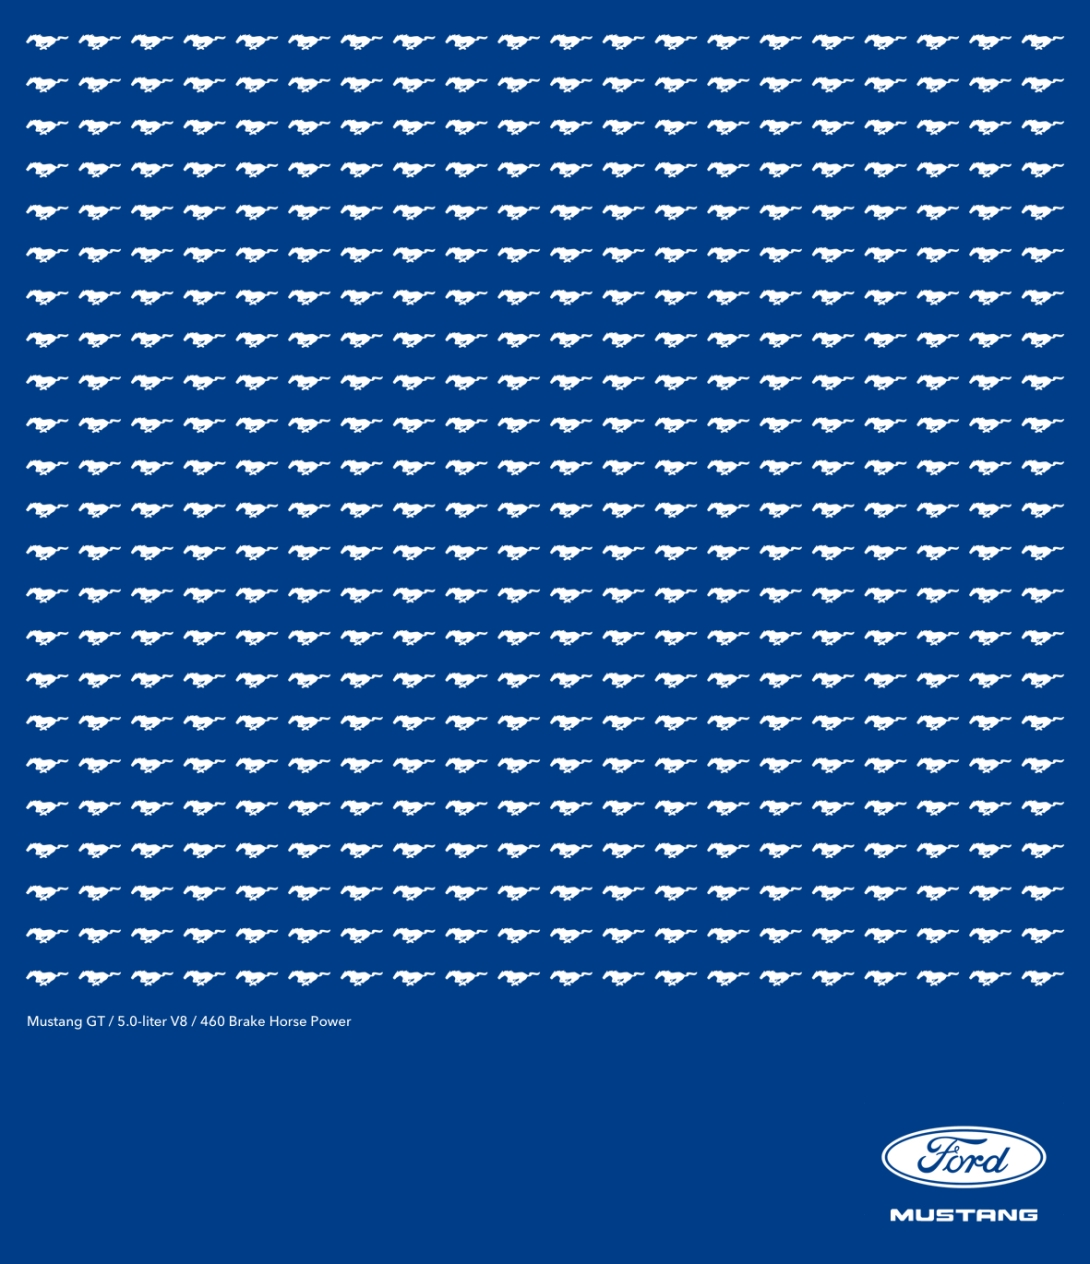 rough print ad idea for the Ford Mustang